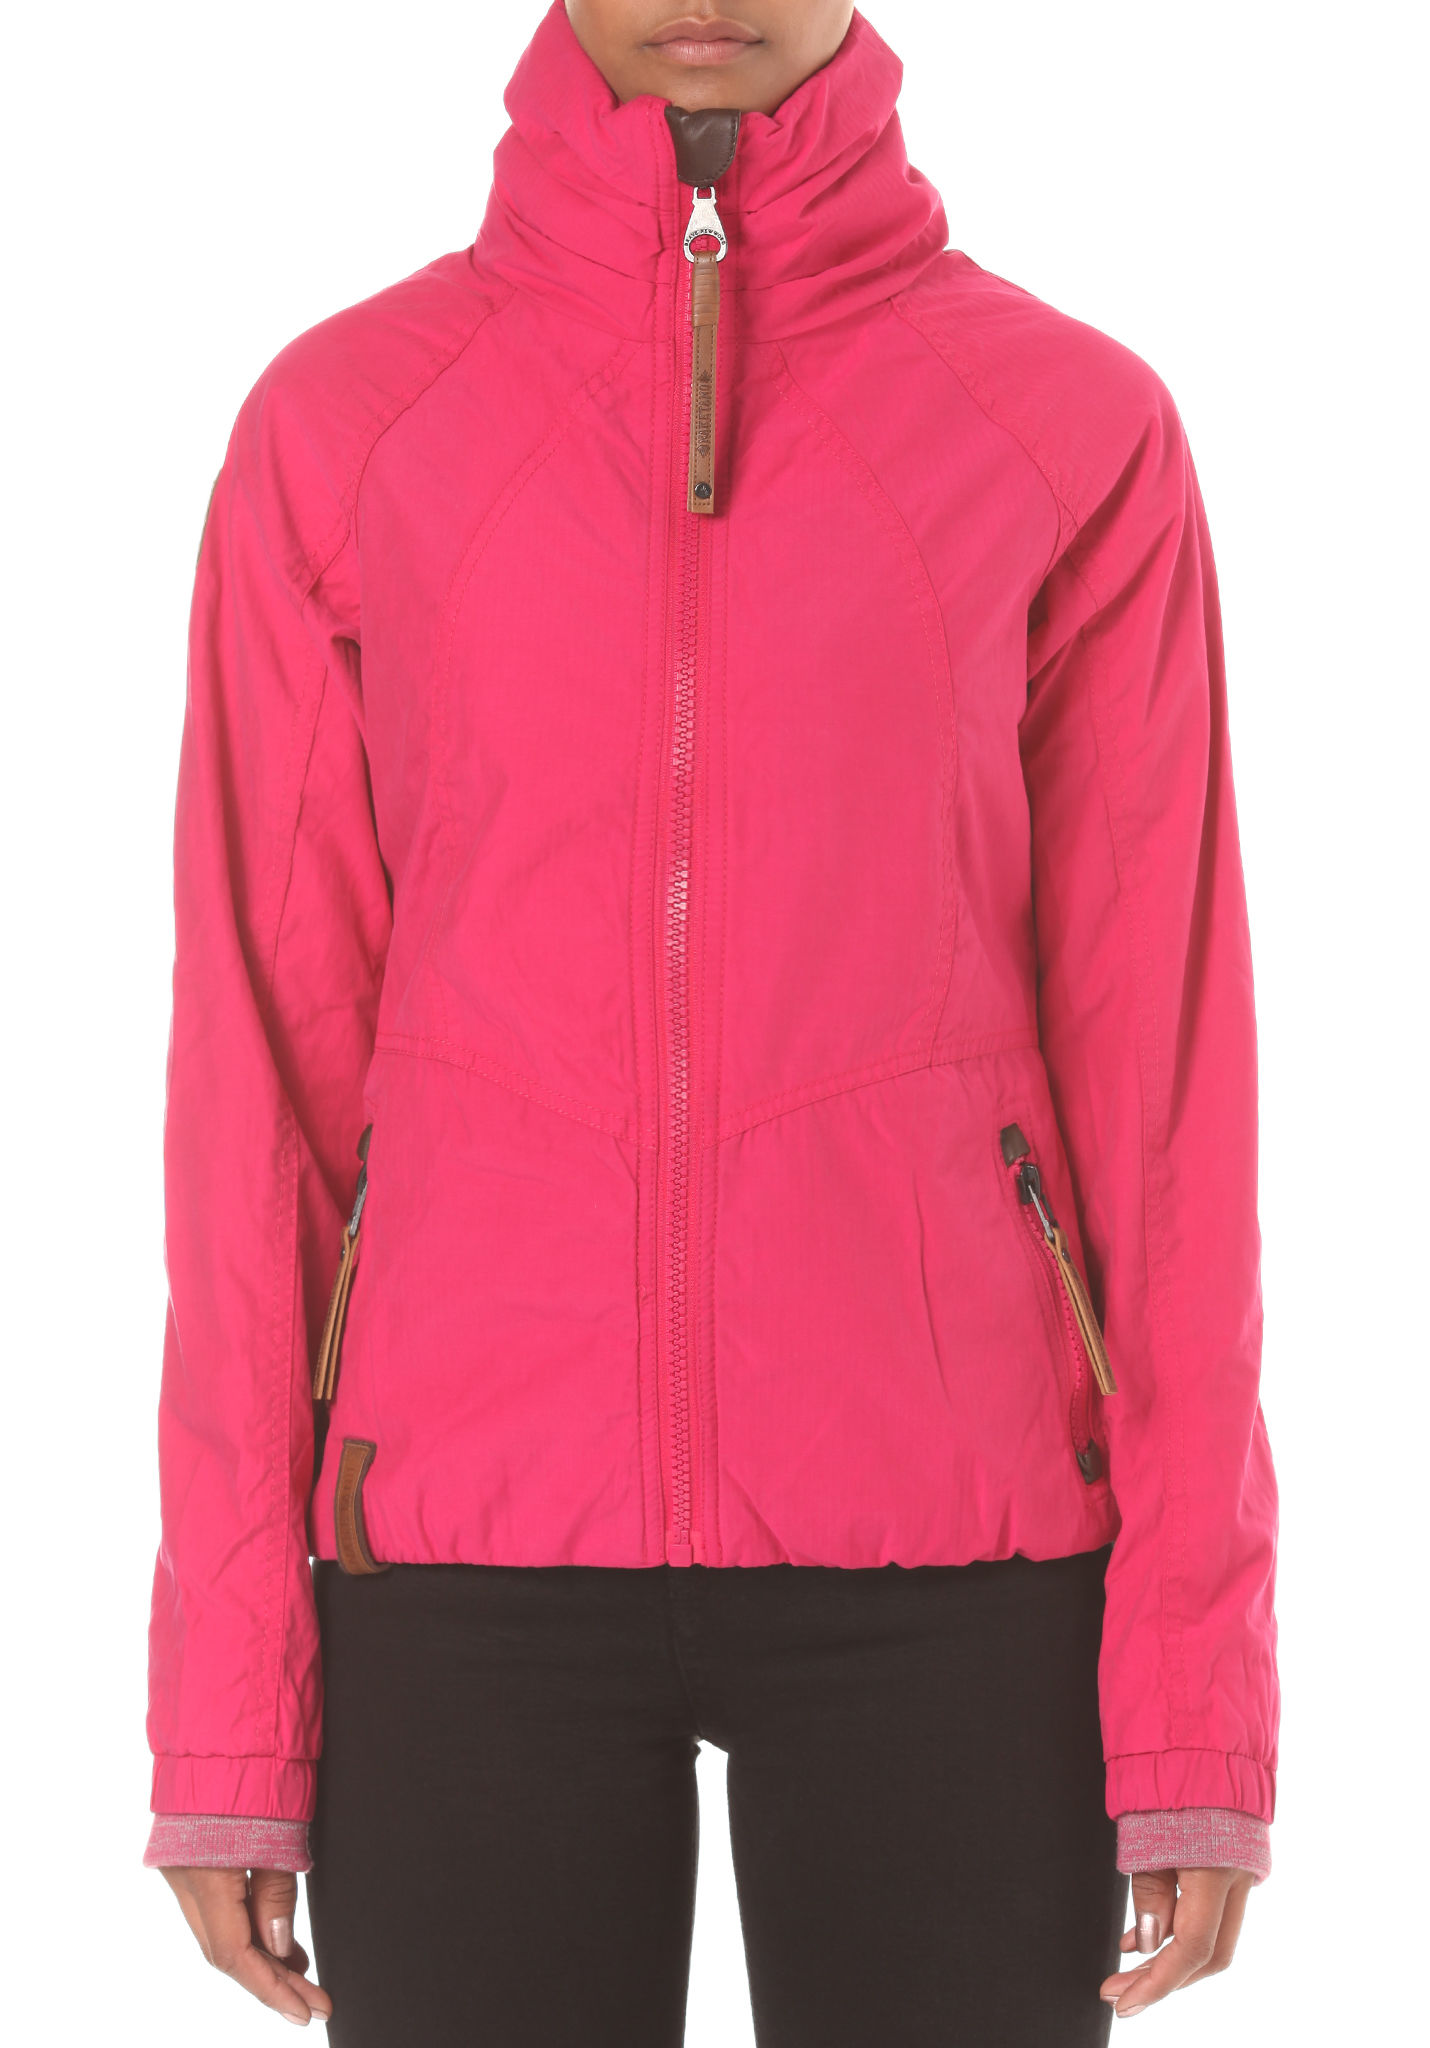 Naketano jacken damen pink